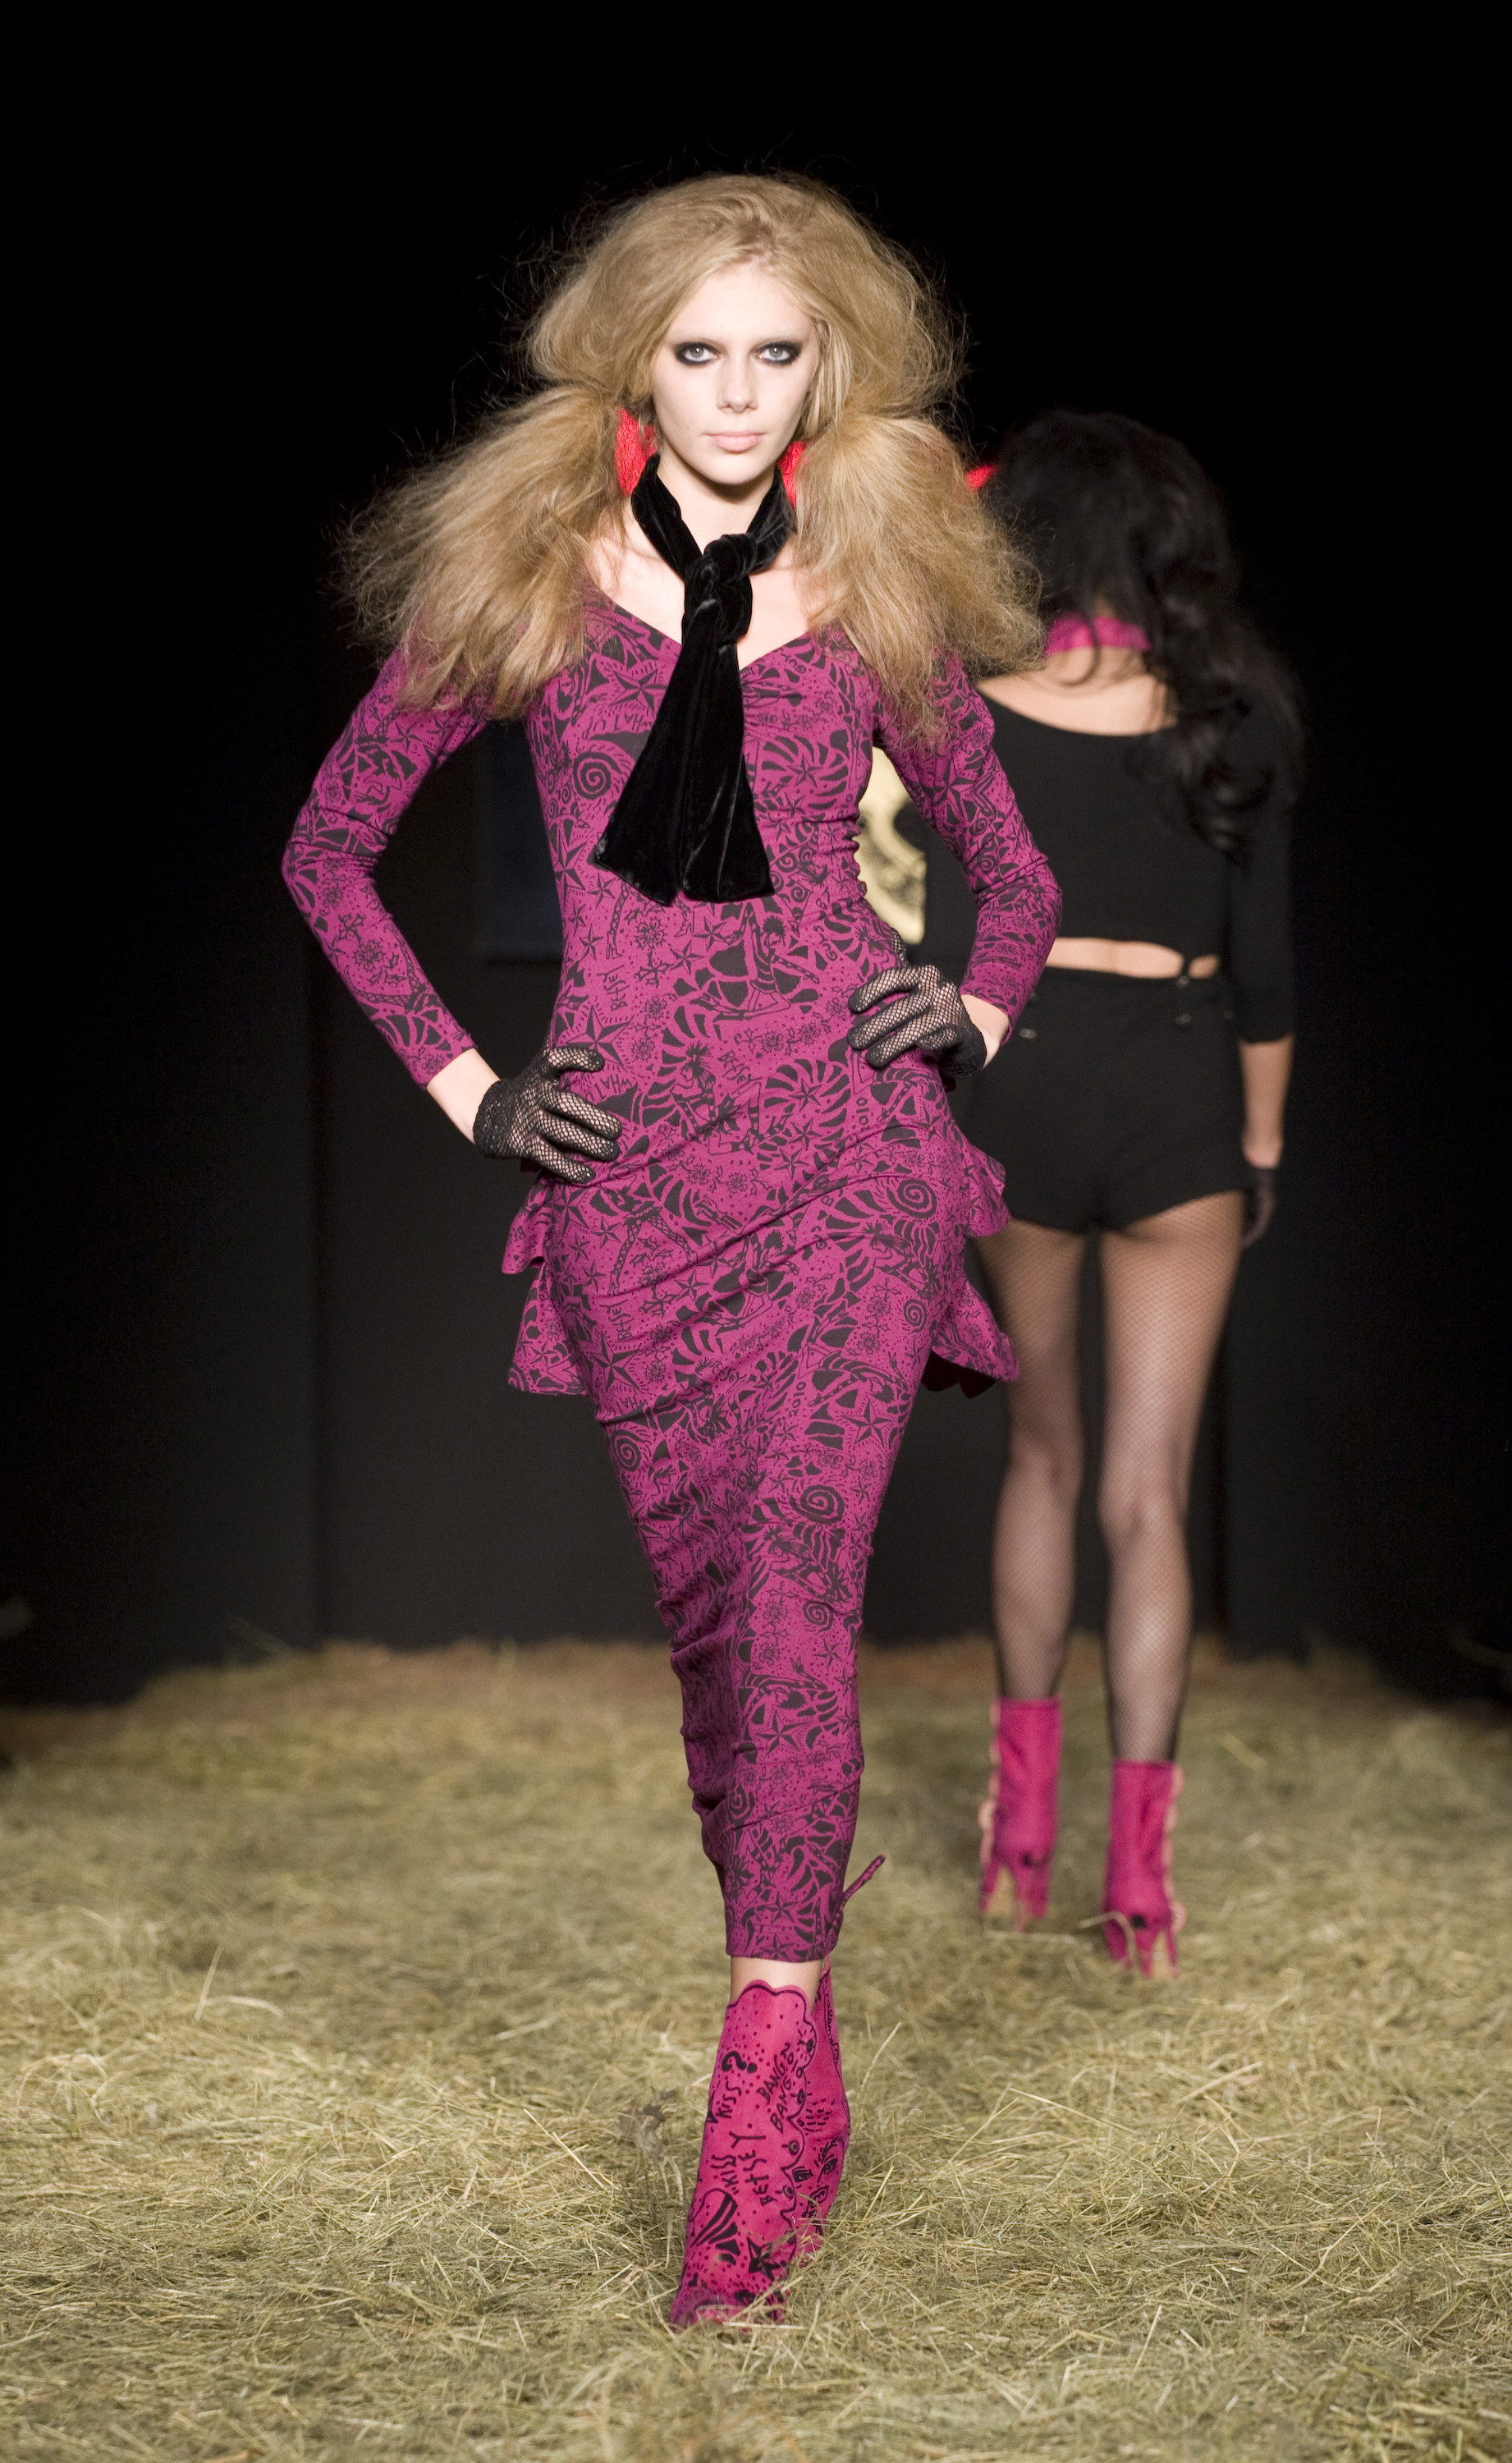 Thomas Dunkin creates beautiful hair for Betsey Johnson